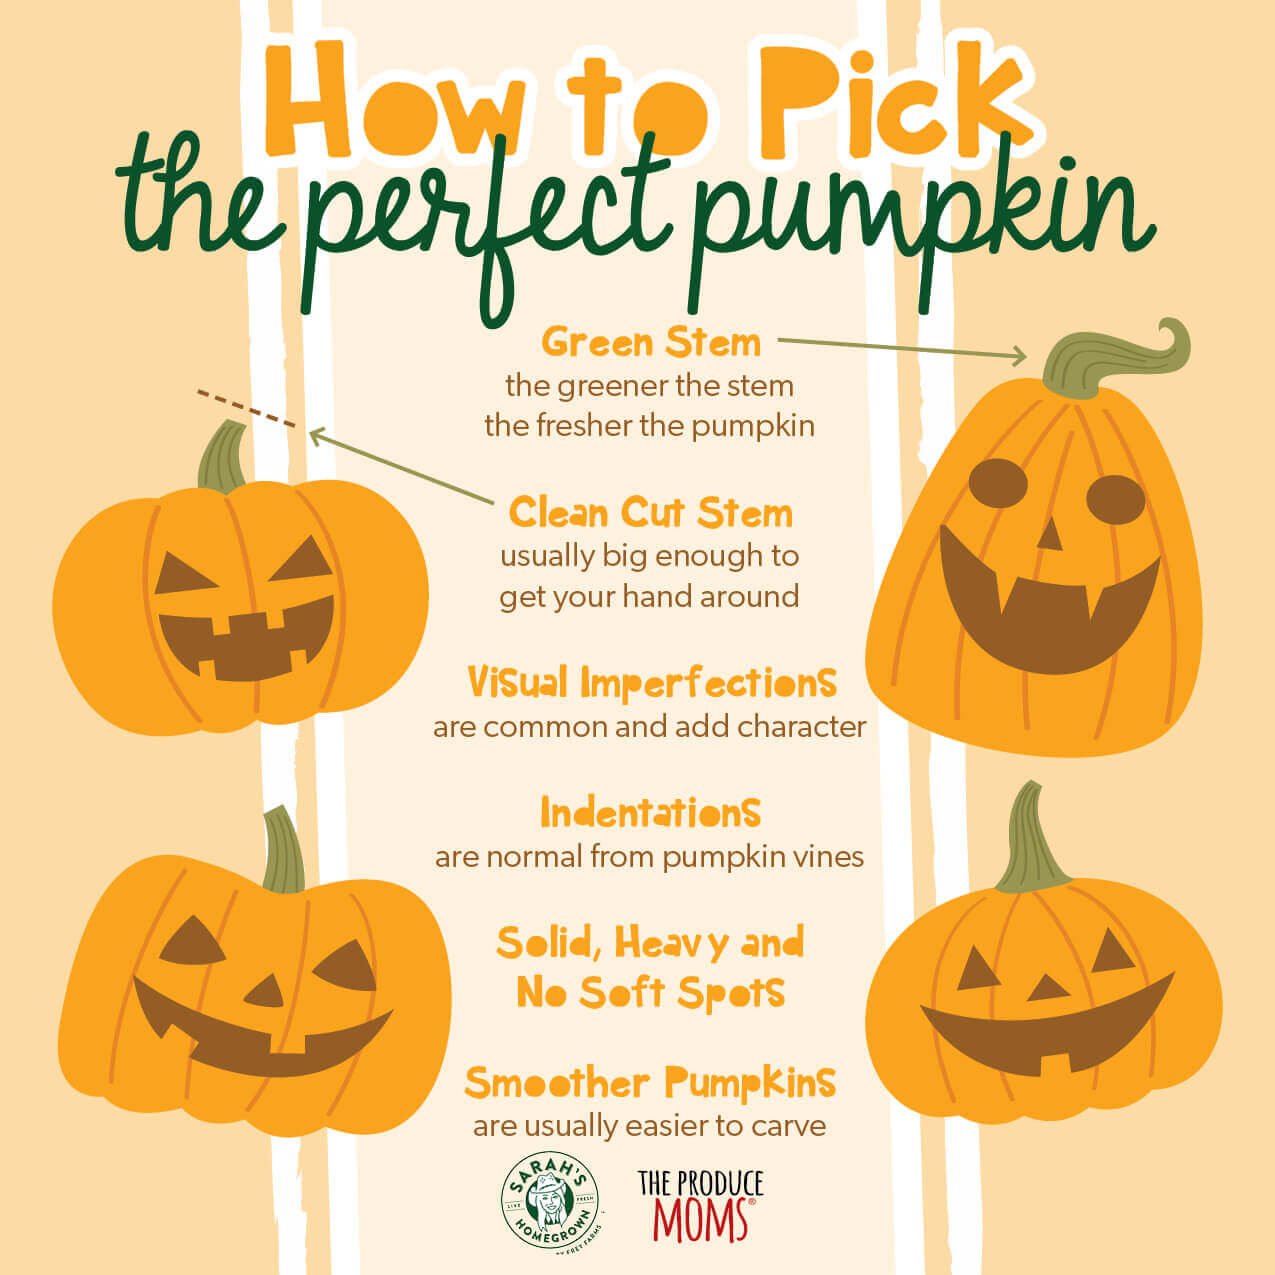 How To Pick a Pumpkin